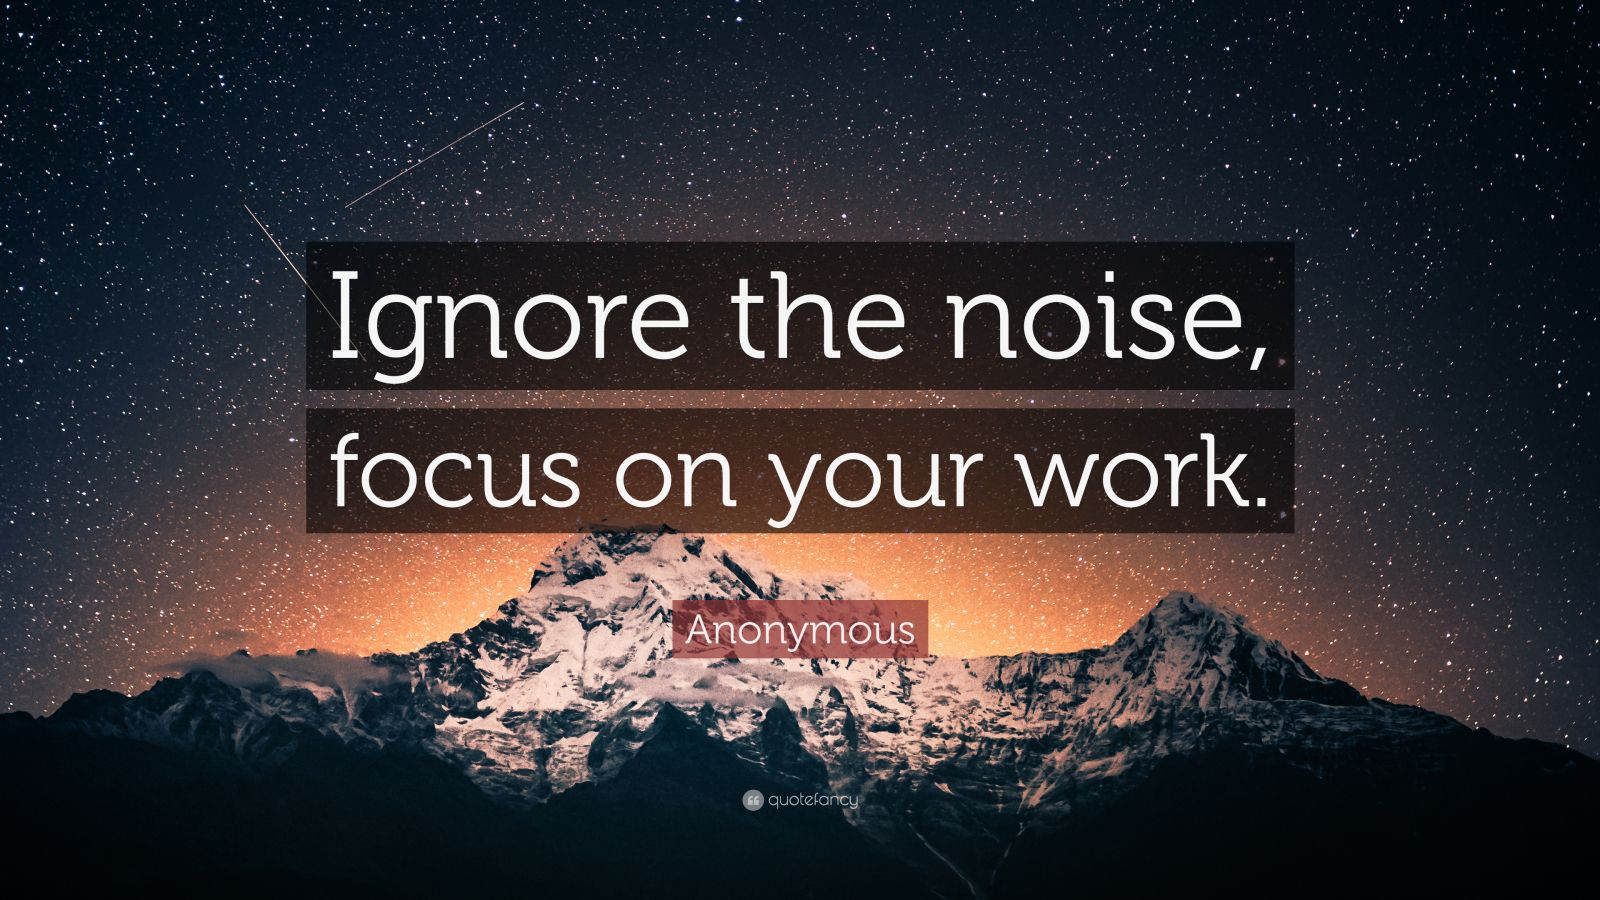 Business Quotes Wallpapers For Desktop Motivational Success Anonymous Quote Ignore The Noise Focus On Your Work